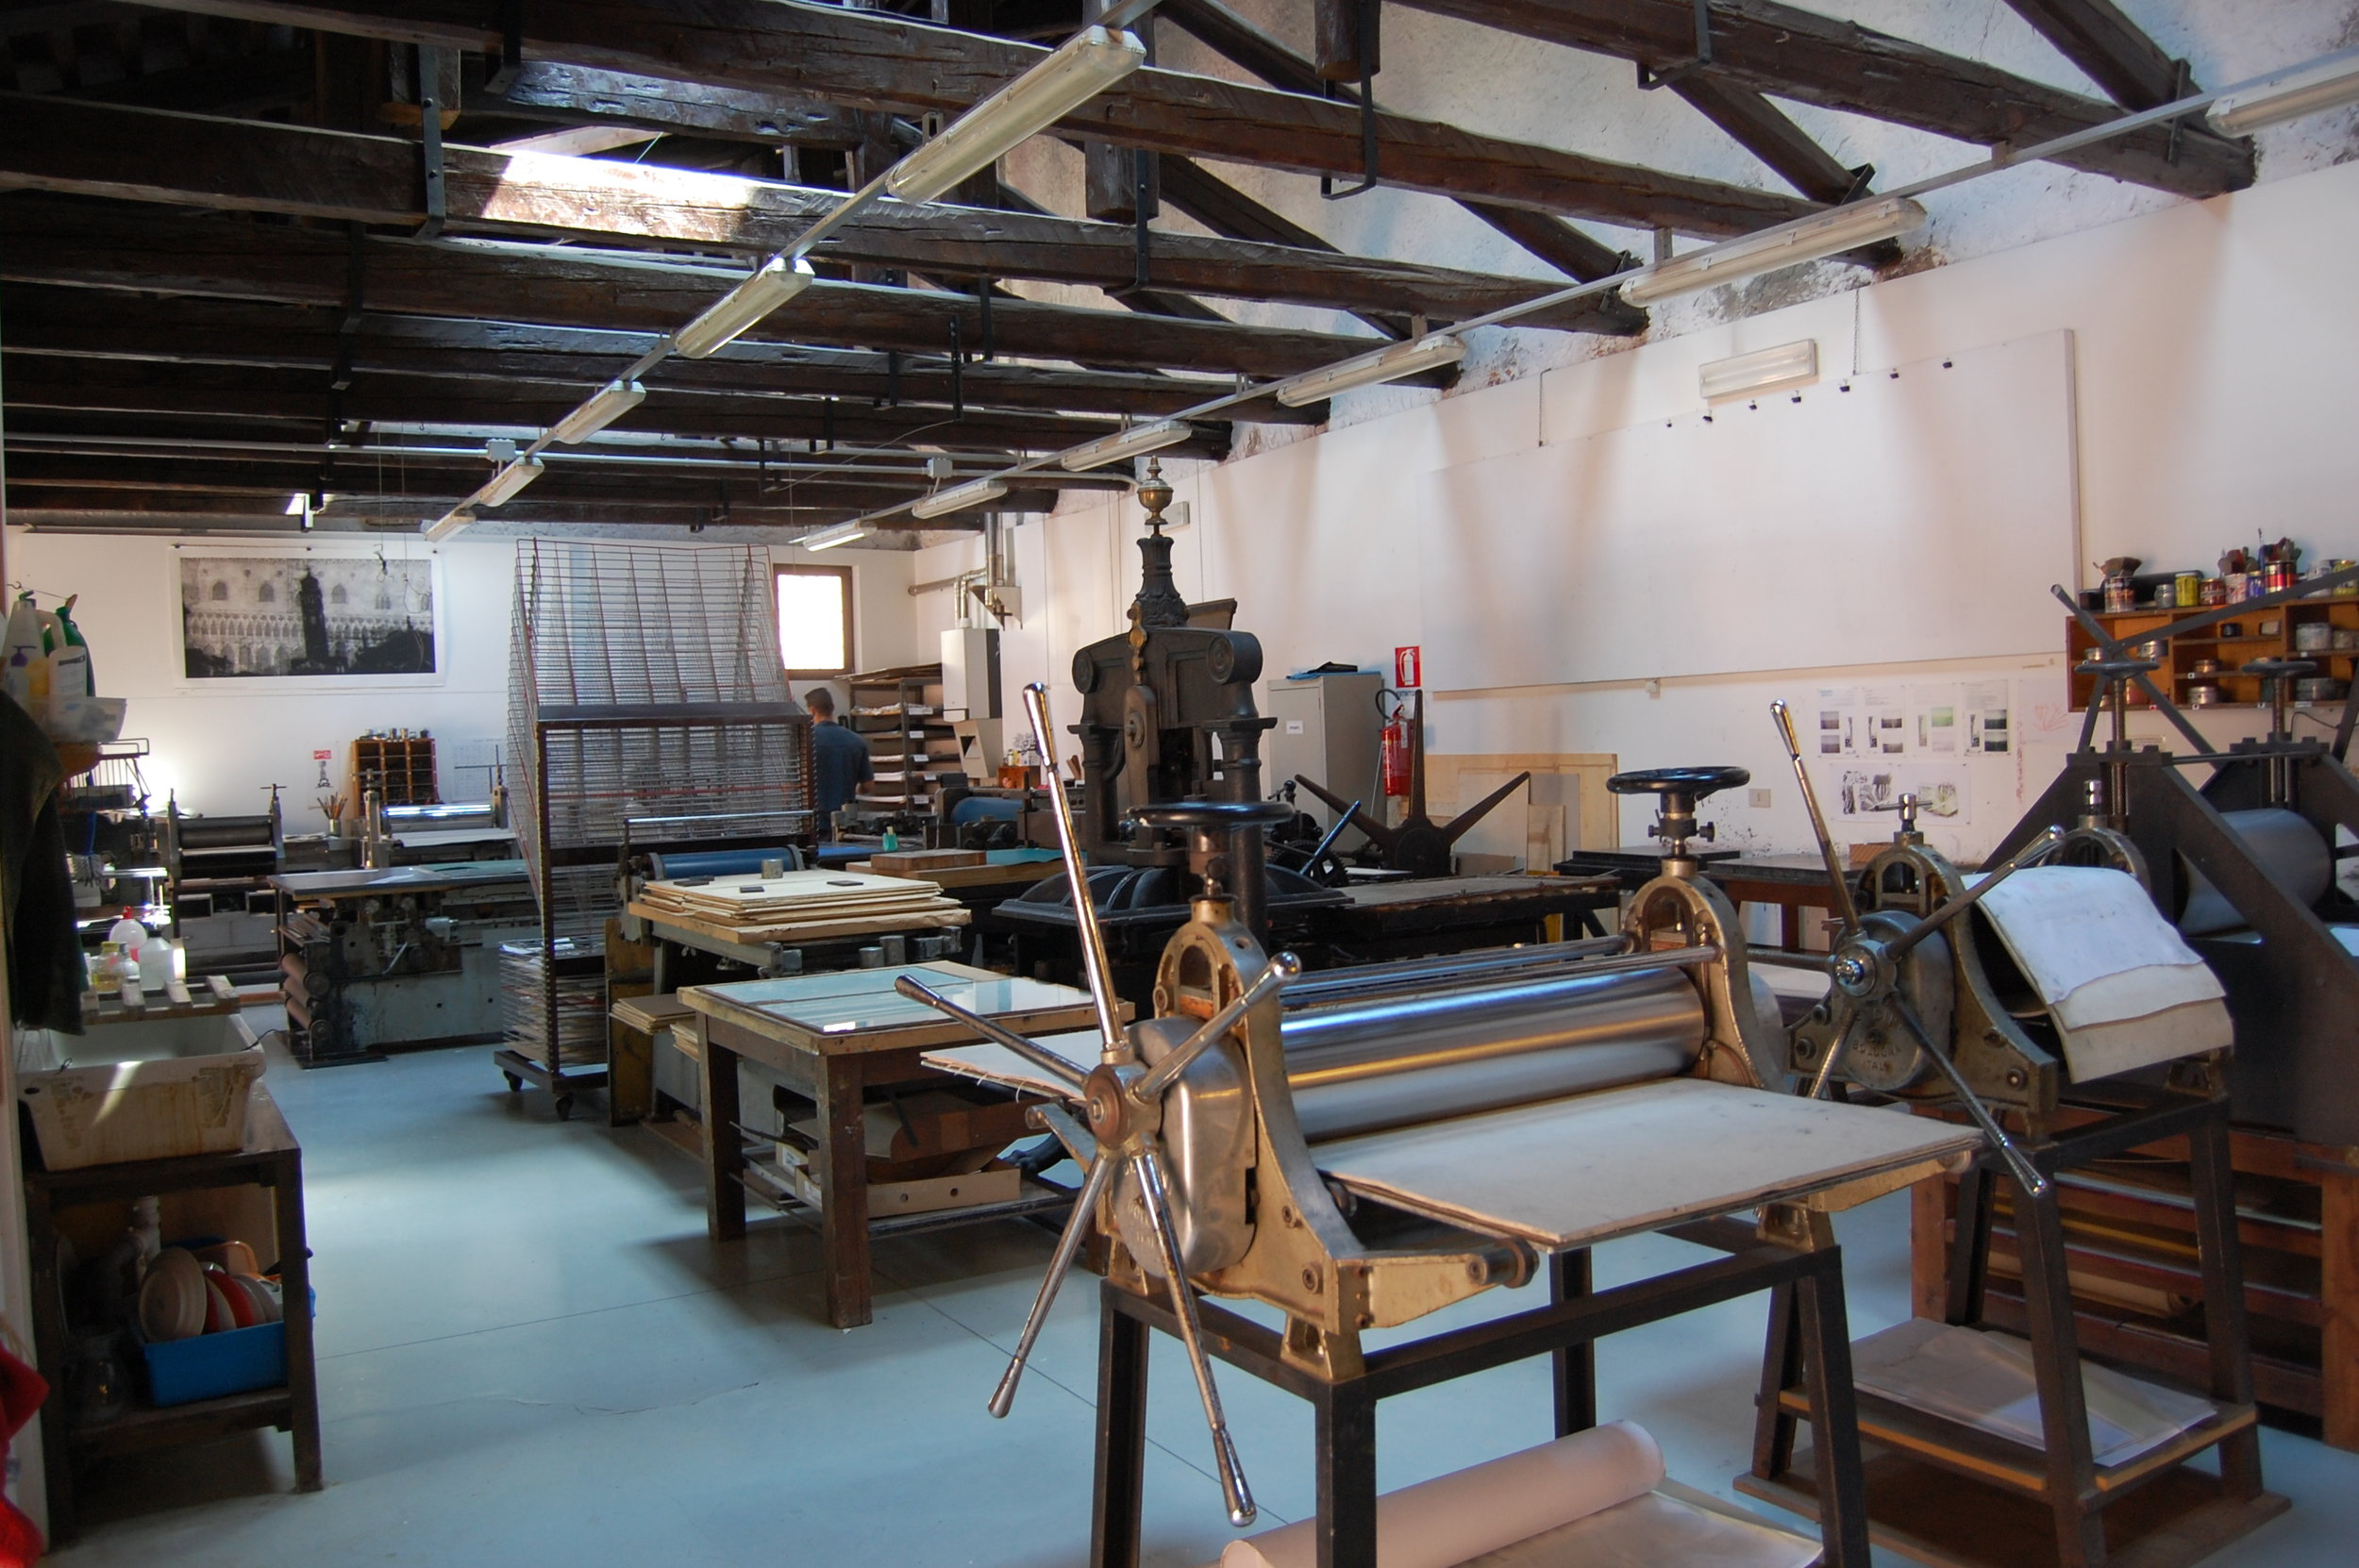 Printmaking studio at Scuola di Grafica